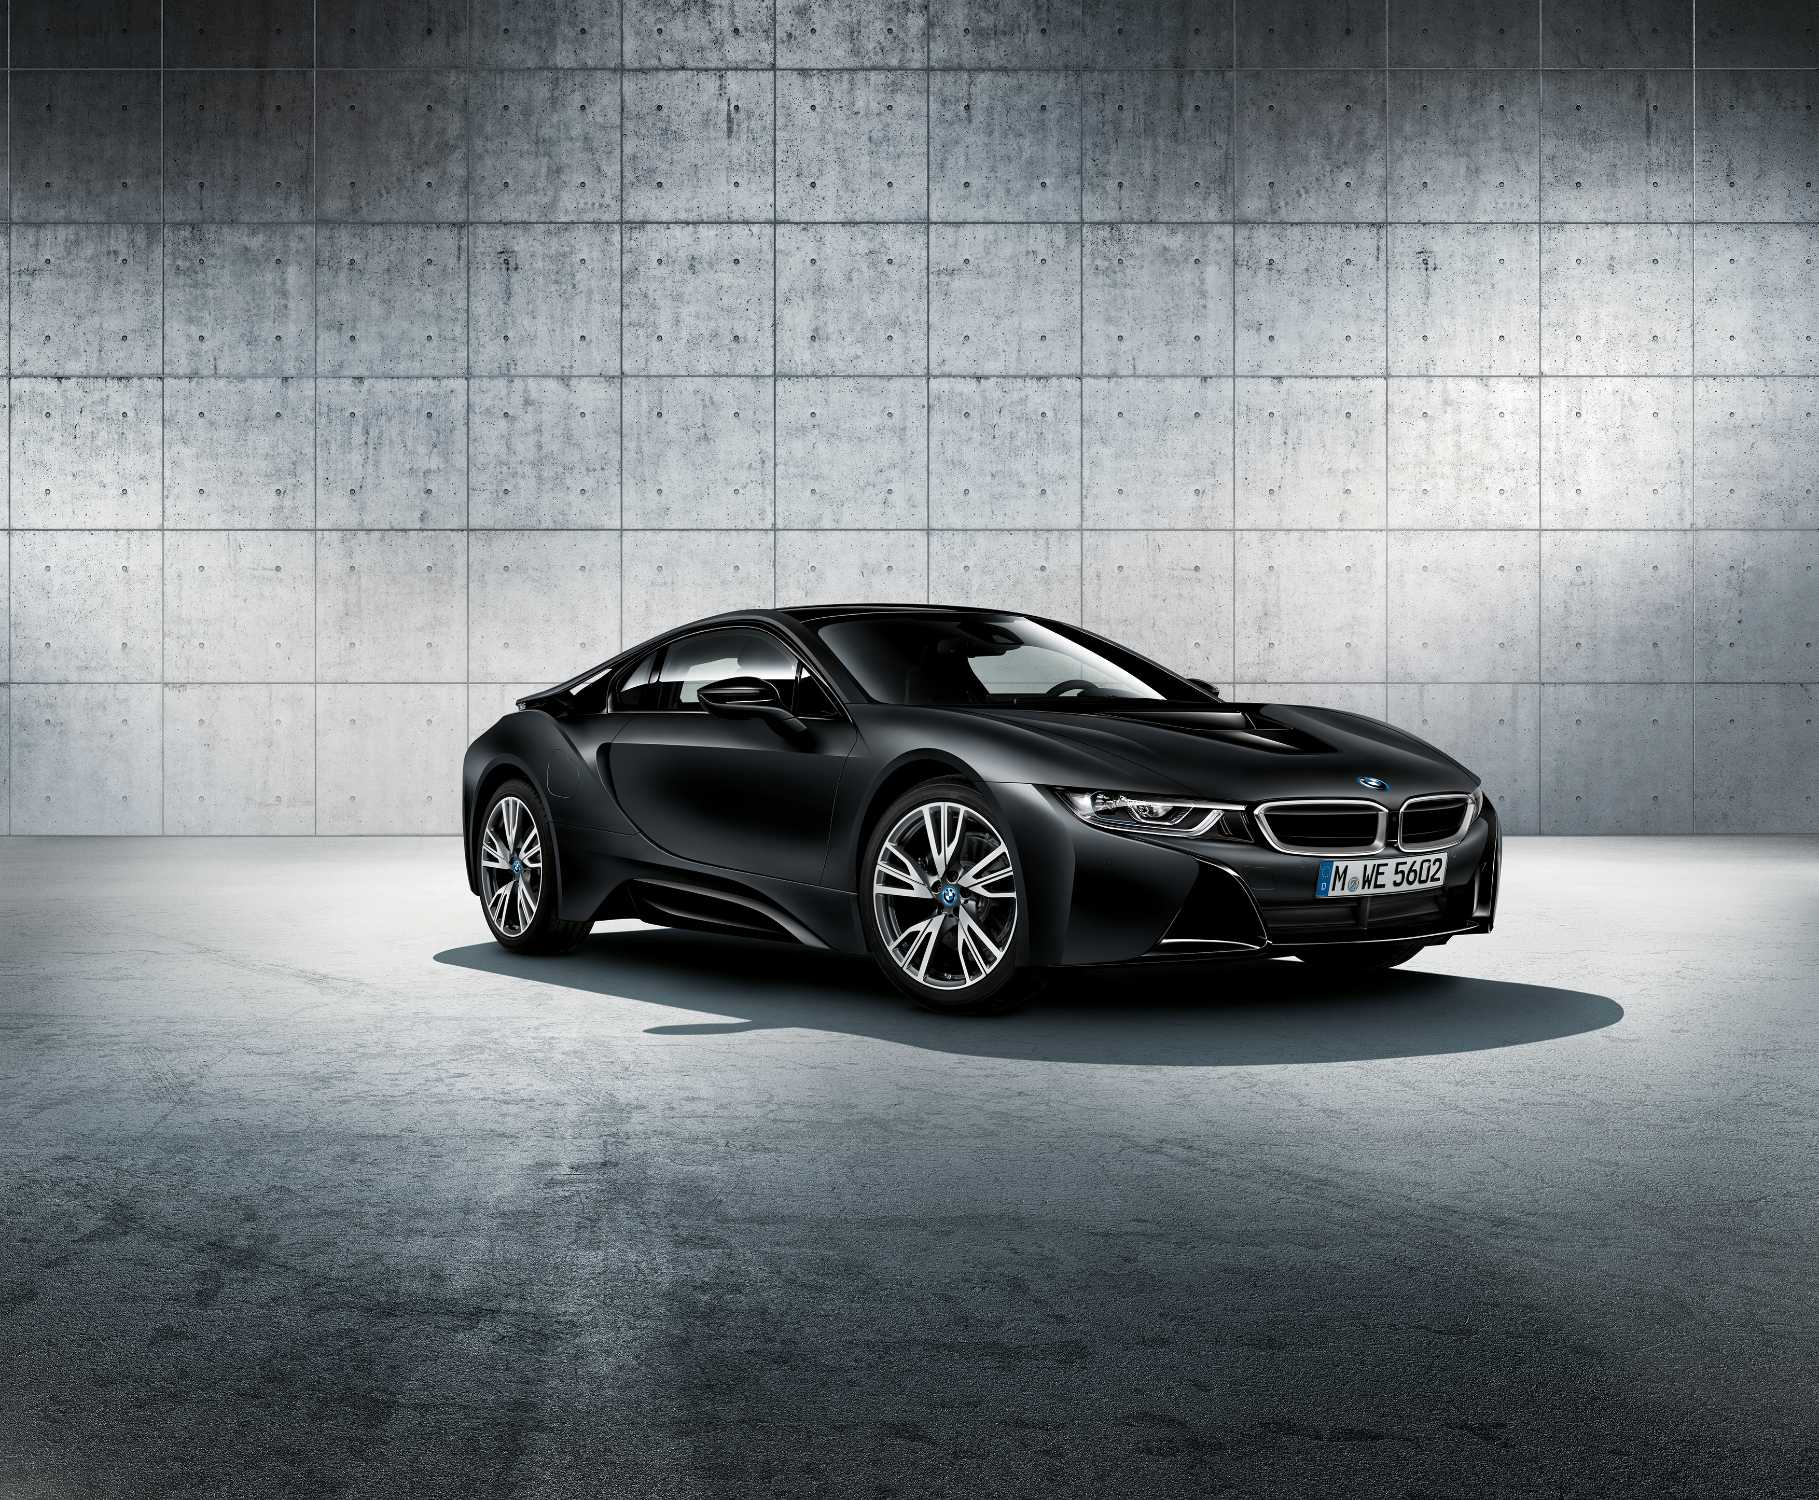 The new bmw i8 frozen black edition 01 2017